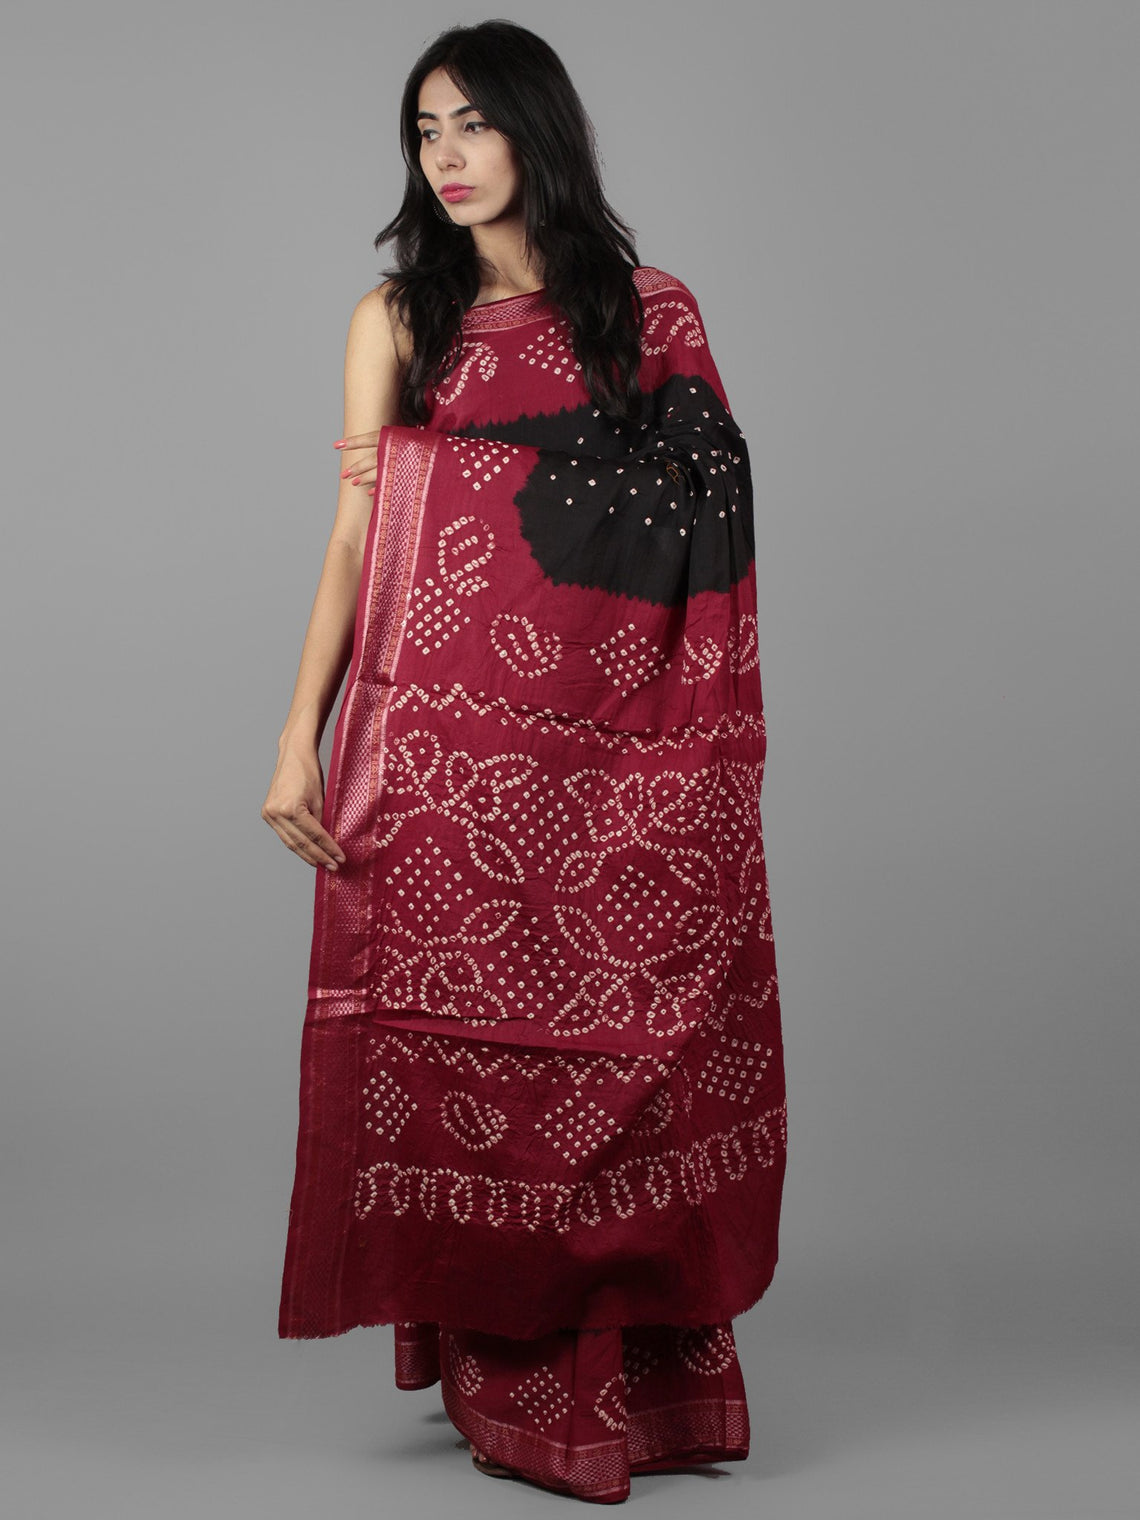 Black Maroon Ivory Hand Tie & Dye Bandhej Glace Cotton Saree With Resham Border - S031701984